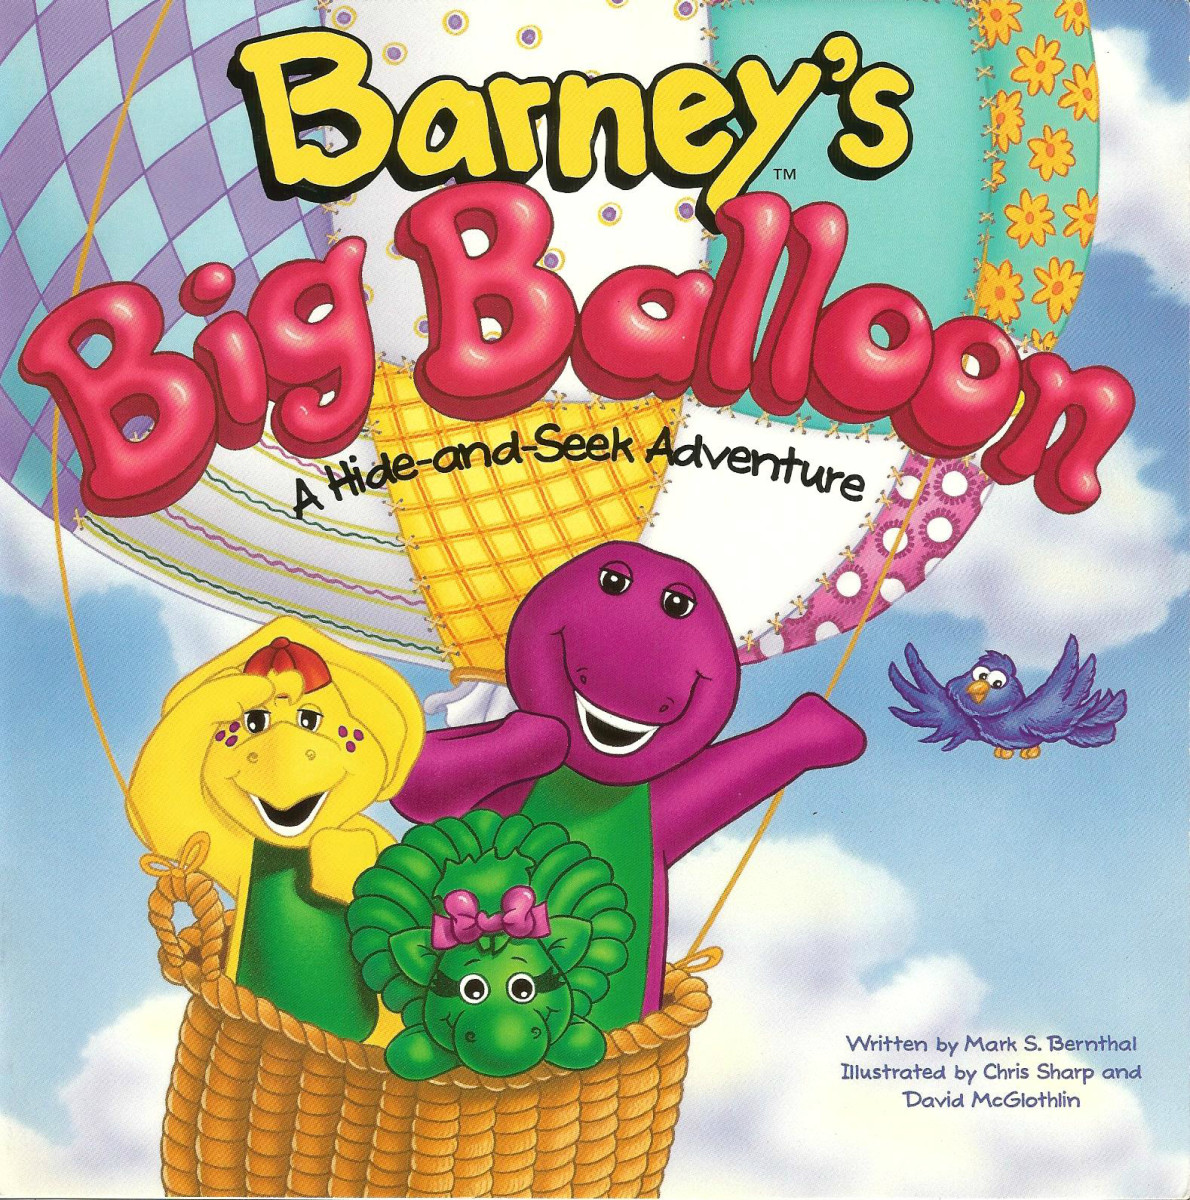 Published in 1995 by the Lyons Partnership, and printed at Color-dynamics in Allen Texas, this is an must have children's book that the whole family will enjoy reading.